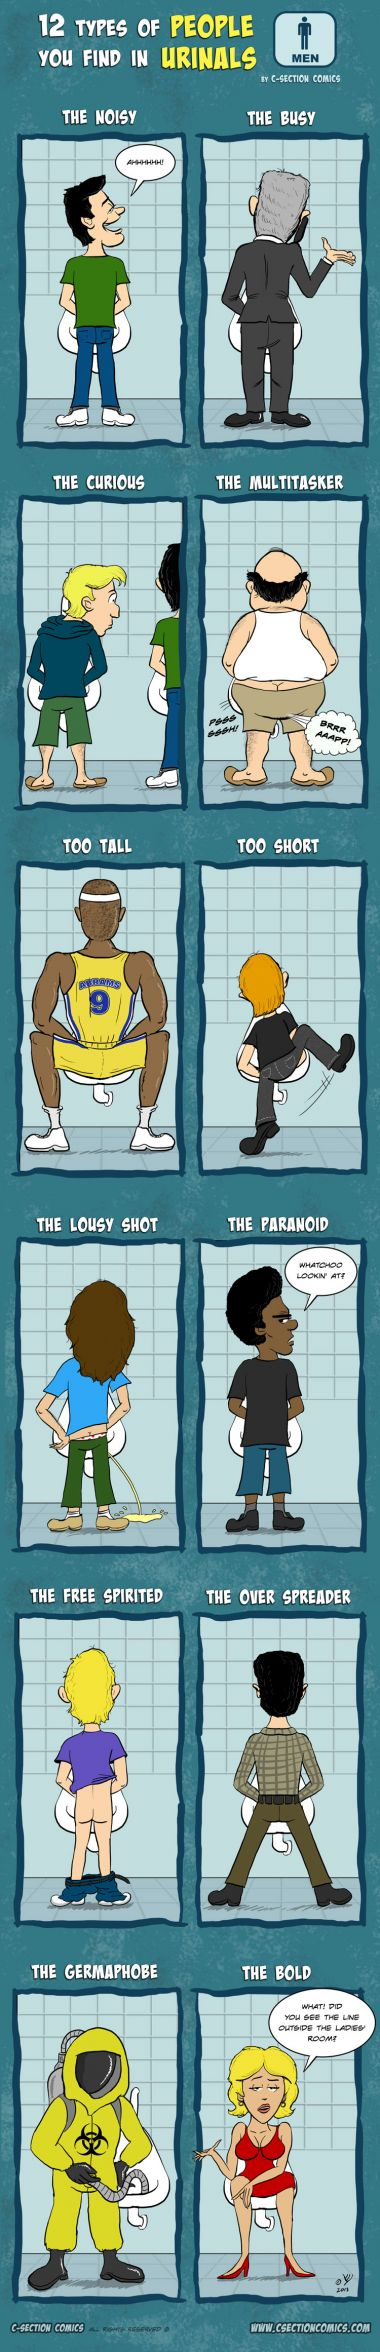 12 Types of People You Find in Urinals - By C-Section Comics